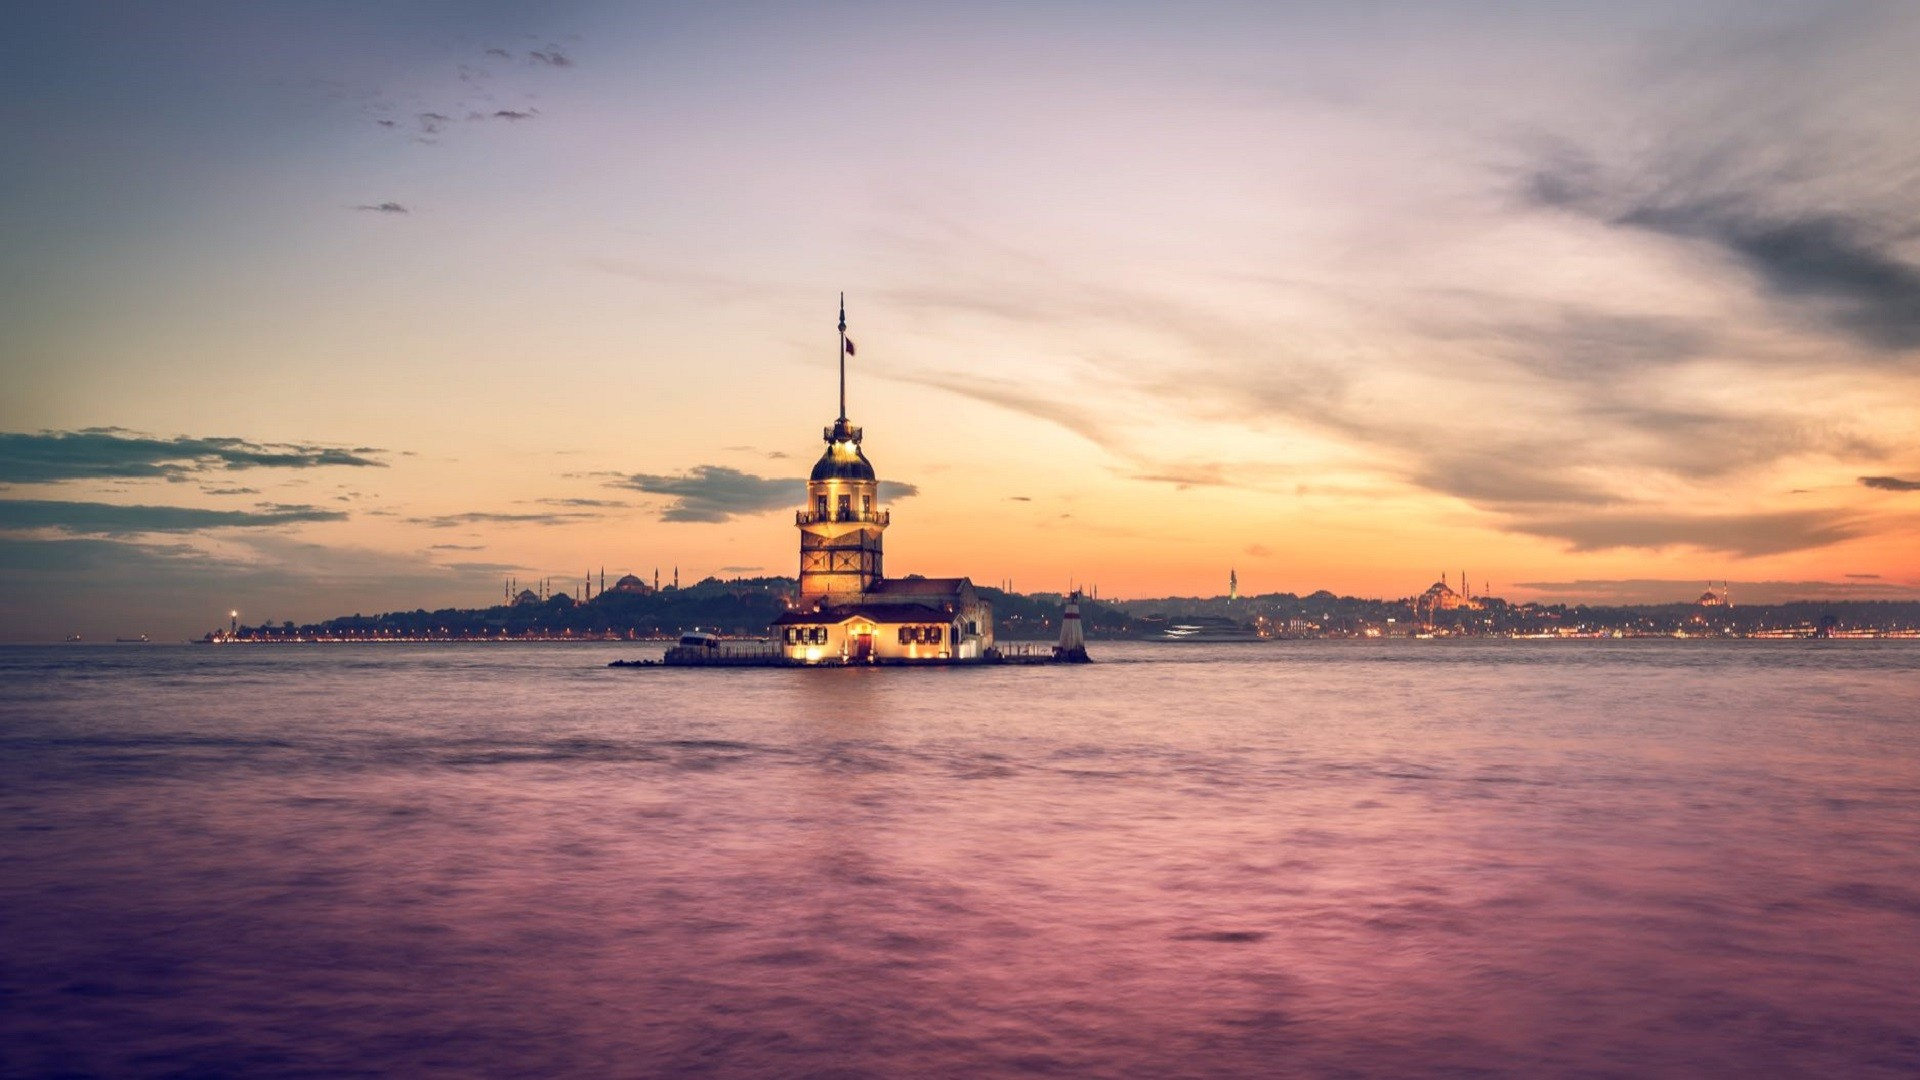 General 1920x1080 Istanbul Turkey Maiden's Tower Bosphorus sea building sunset city Kiz Kulesi Hagia Sophia city lights pink evening calm